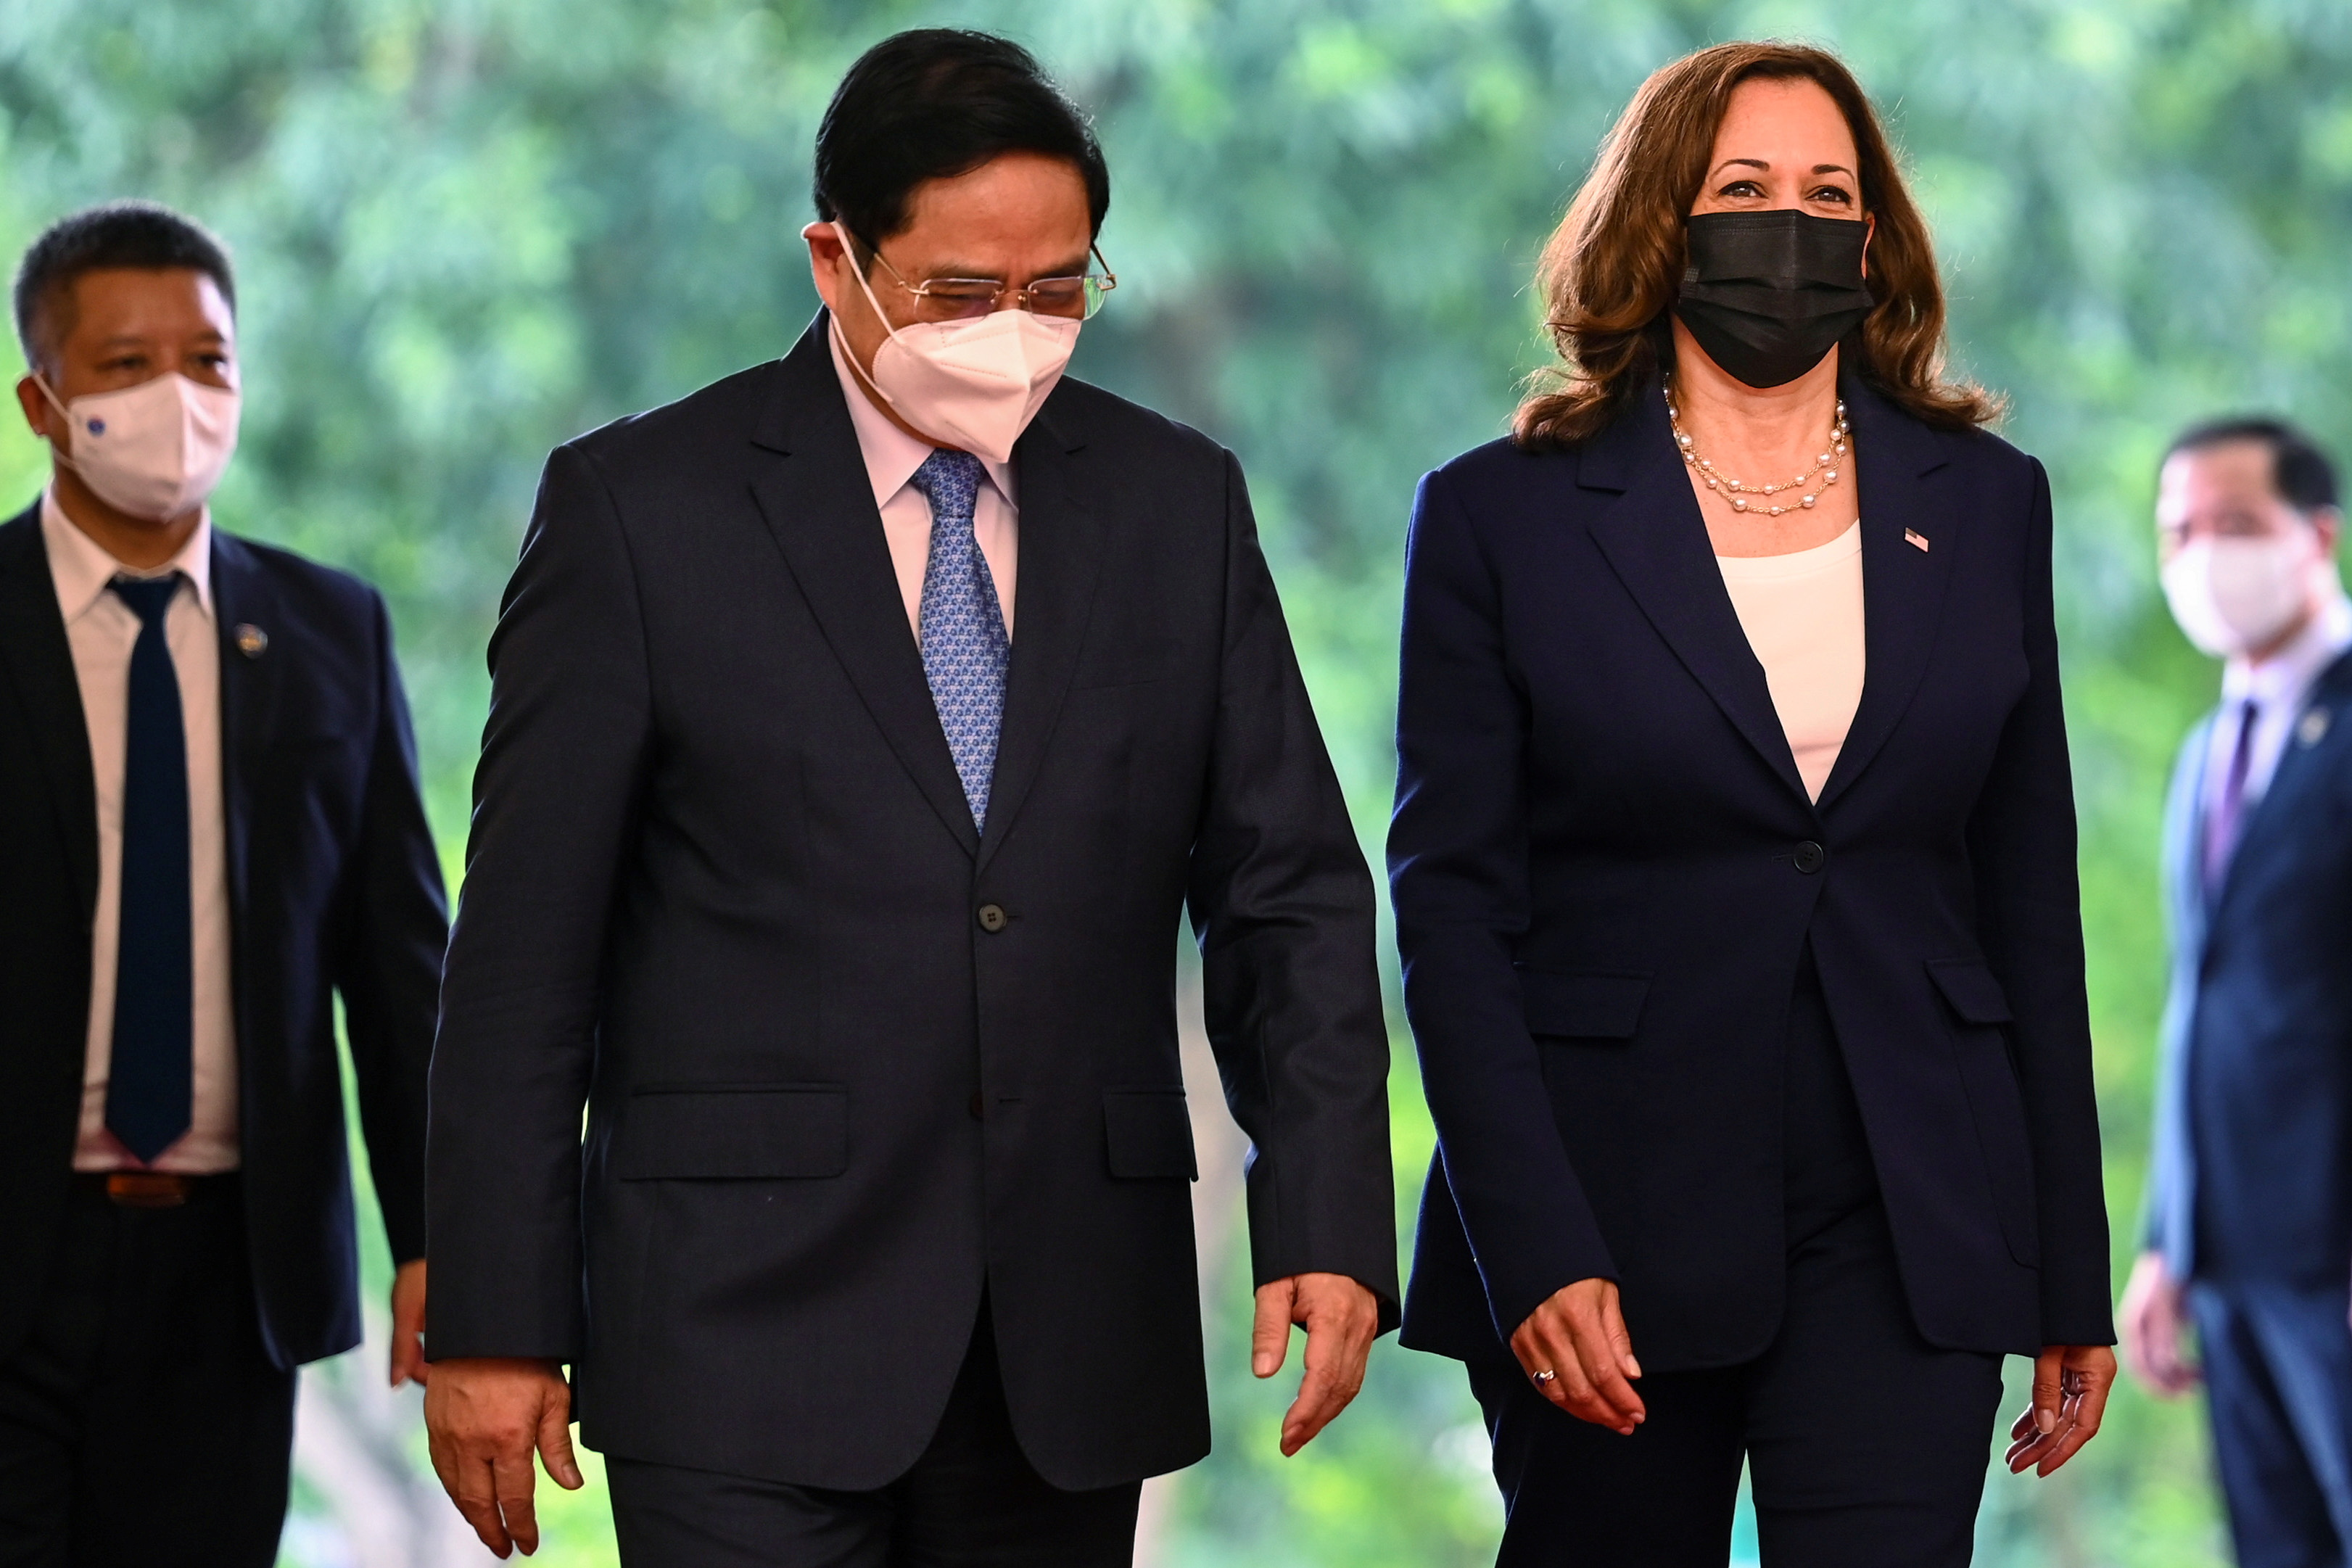 U.S. Vice President Kamala Harris (2nd R) walks with Vietnam's Prime Minister Pham Minh Chinh (2nd L) at the Government office in Hanoi, Vietnam, August 25, 2021. Manan Vatsyayana/Pool via REUTERS